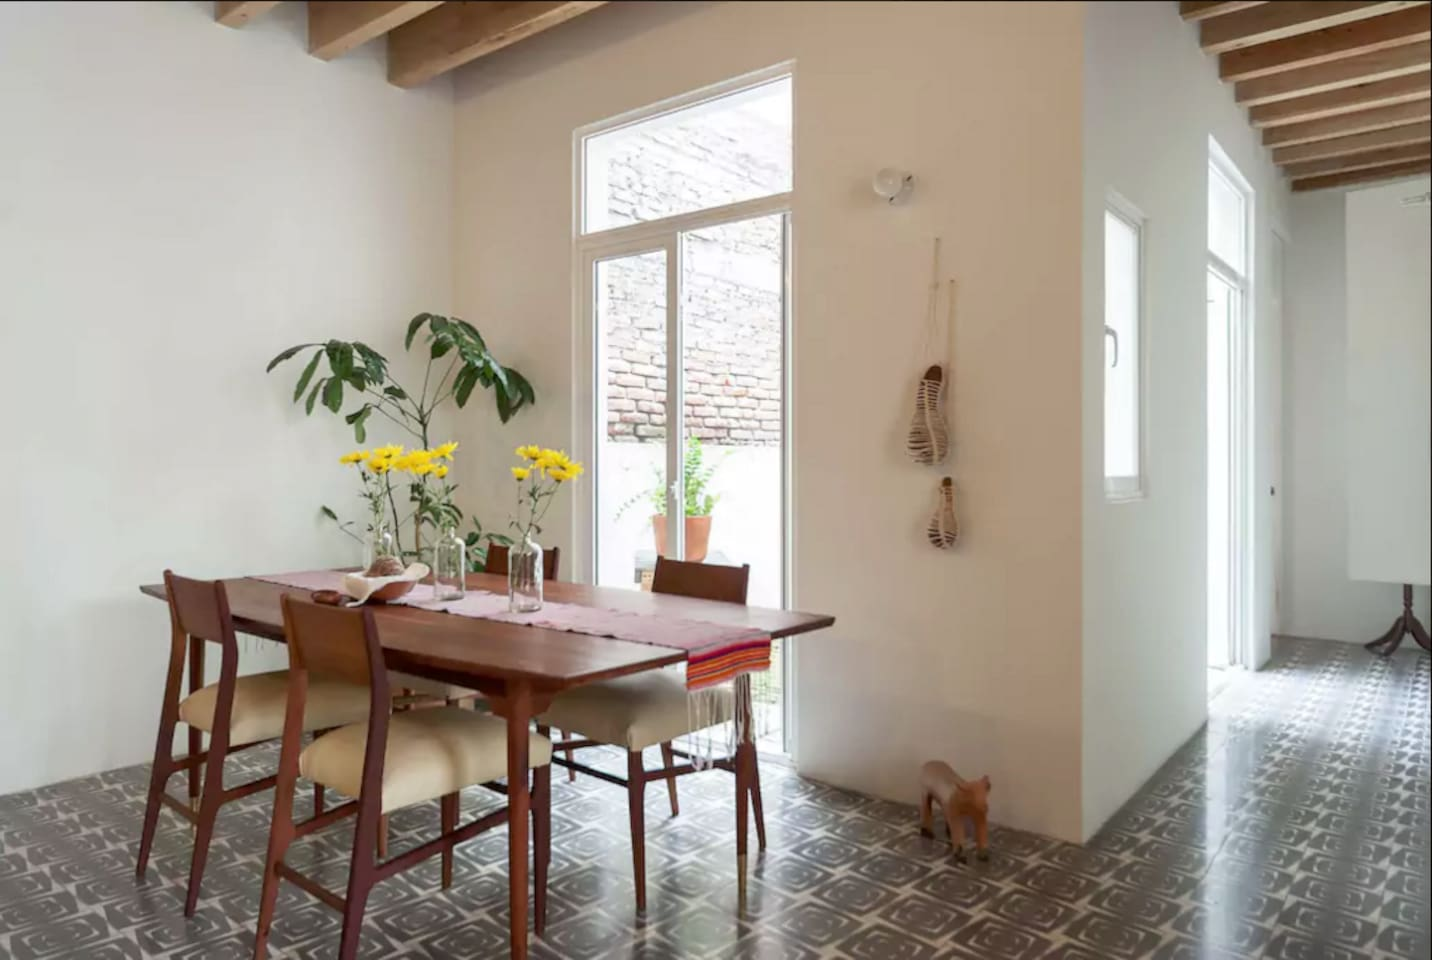 Beautiful courtyard apartment, dinning table for 4.